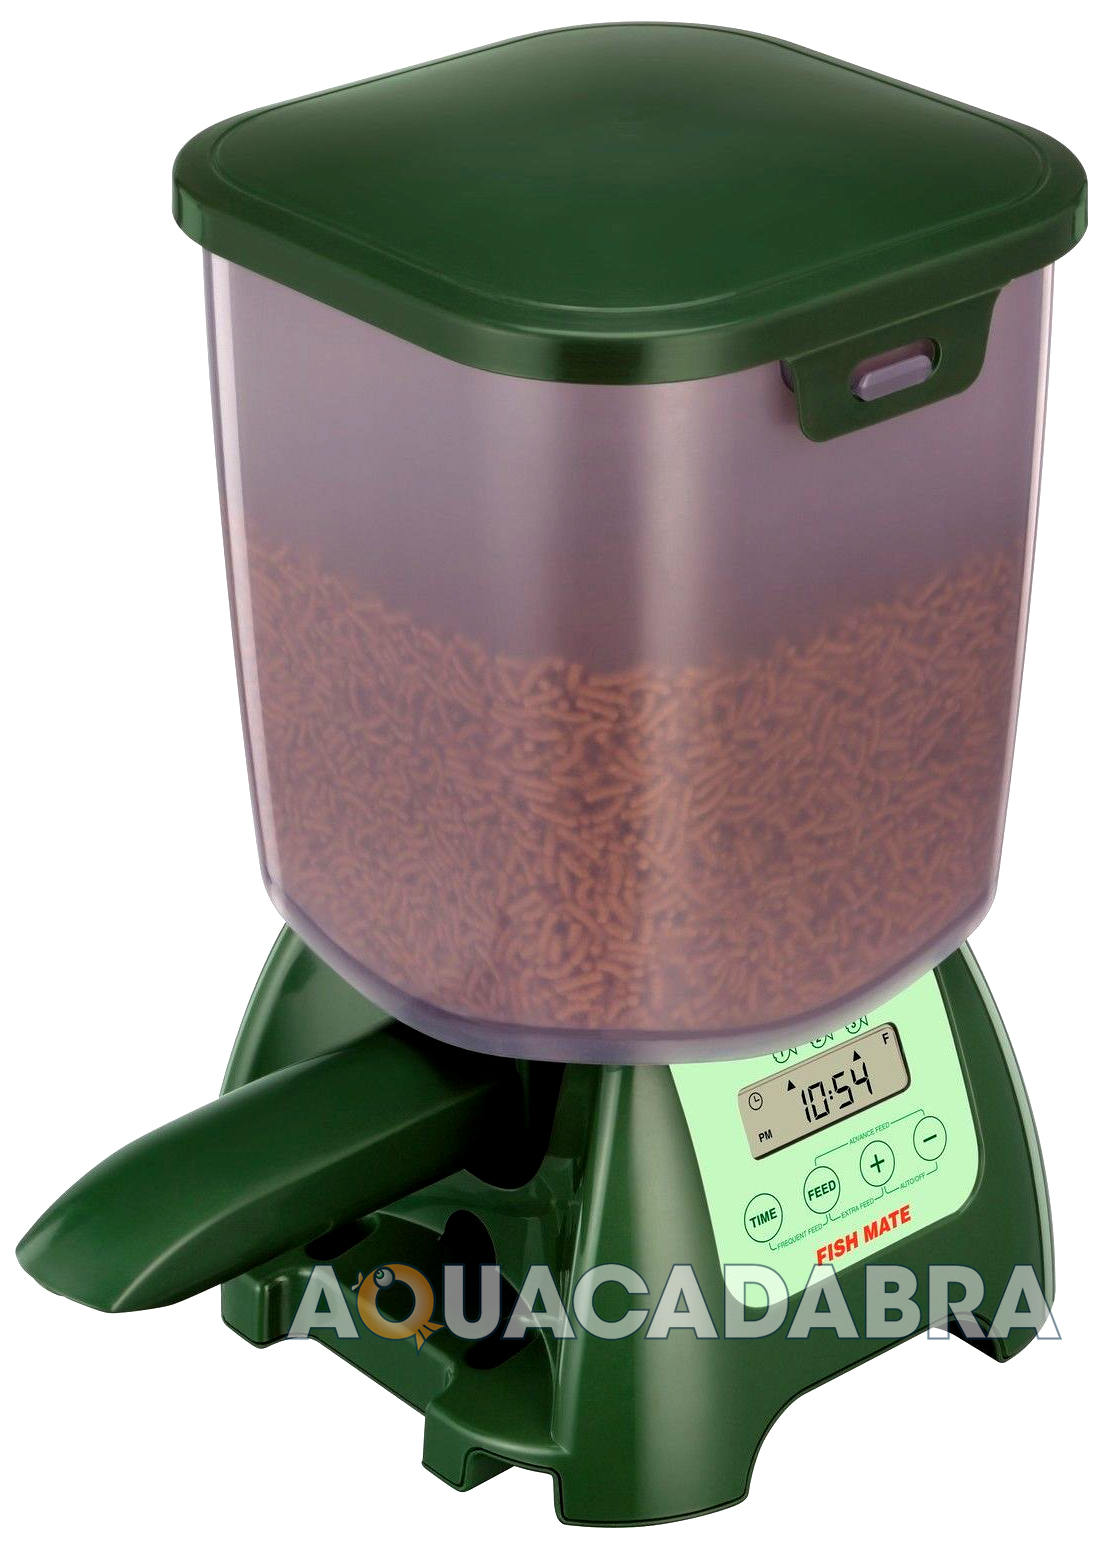 Fish mate automatic feeder auto pond aquarium tank holiday for Fish feeders for ponds